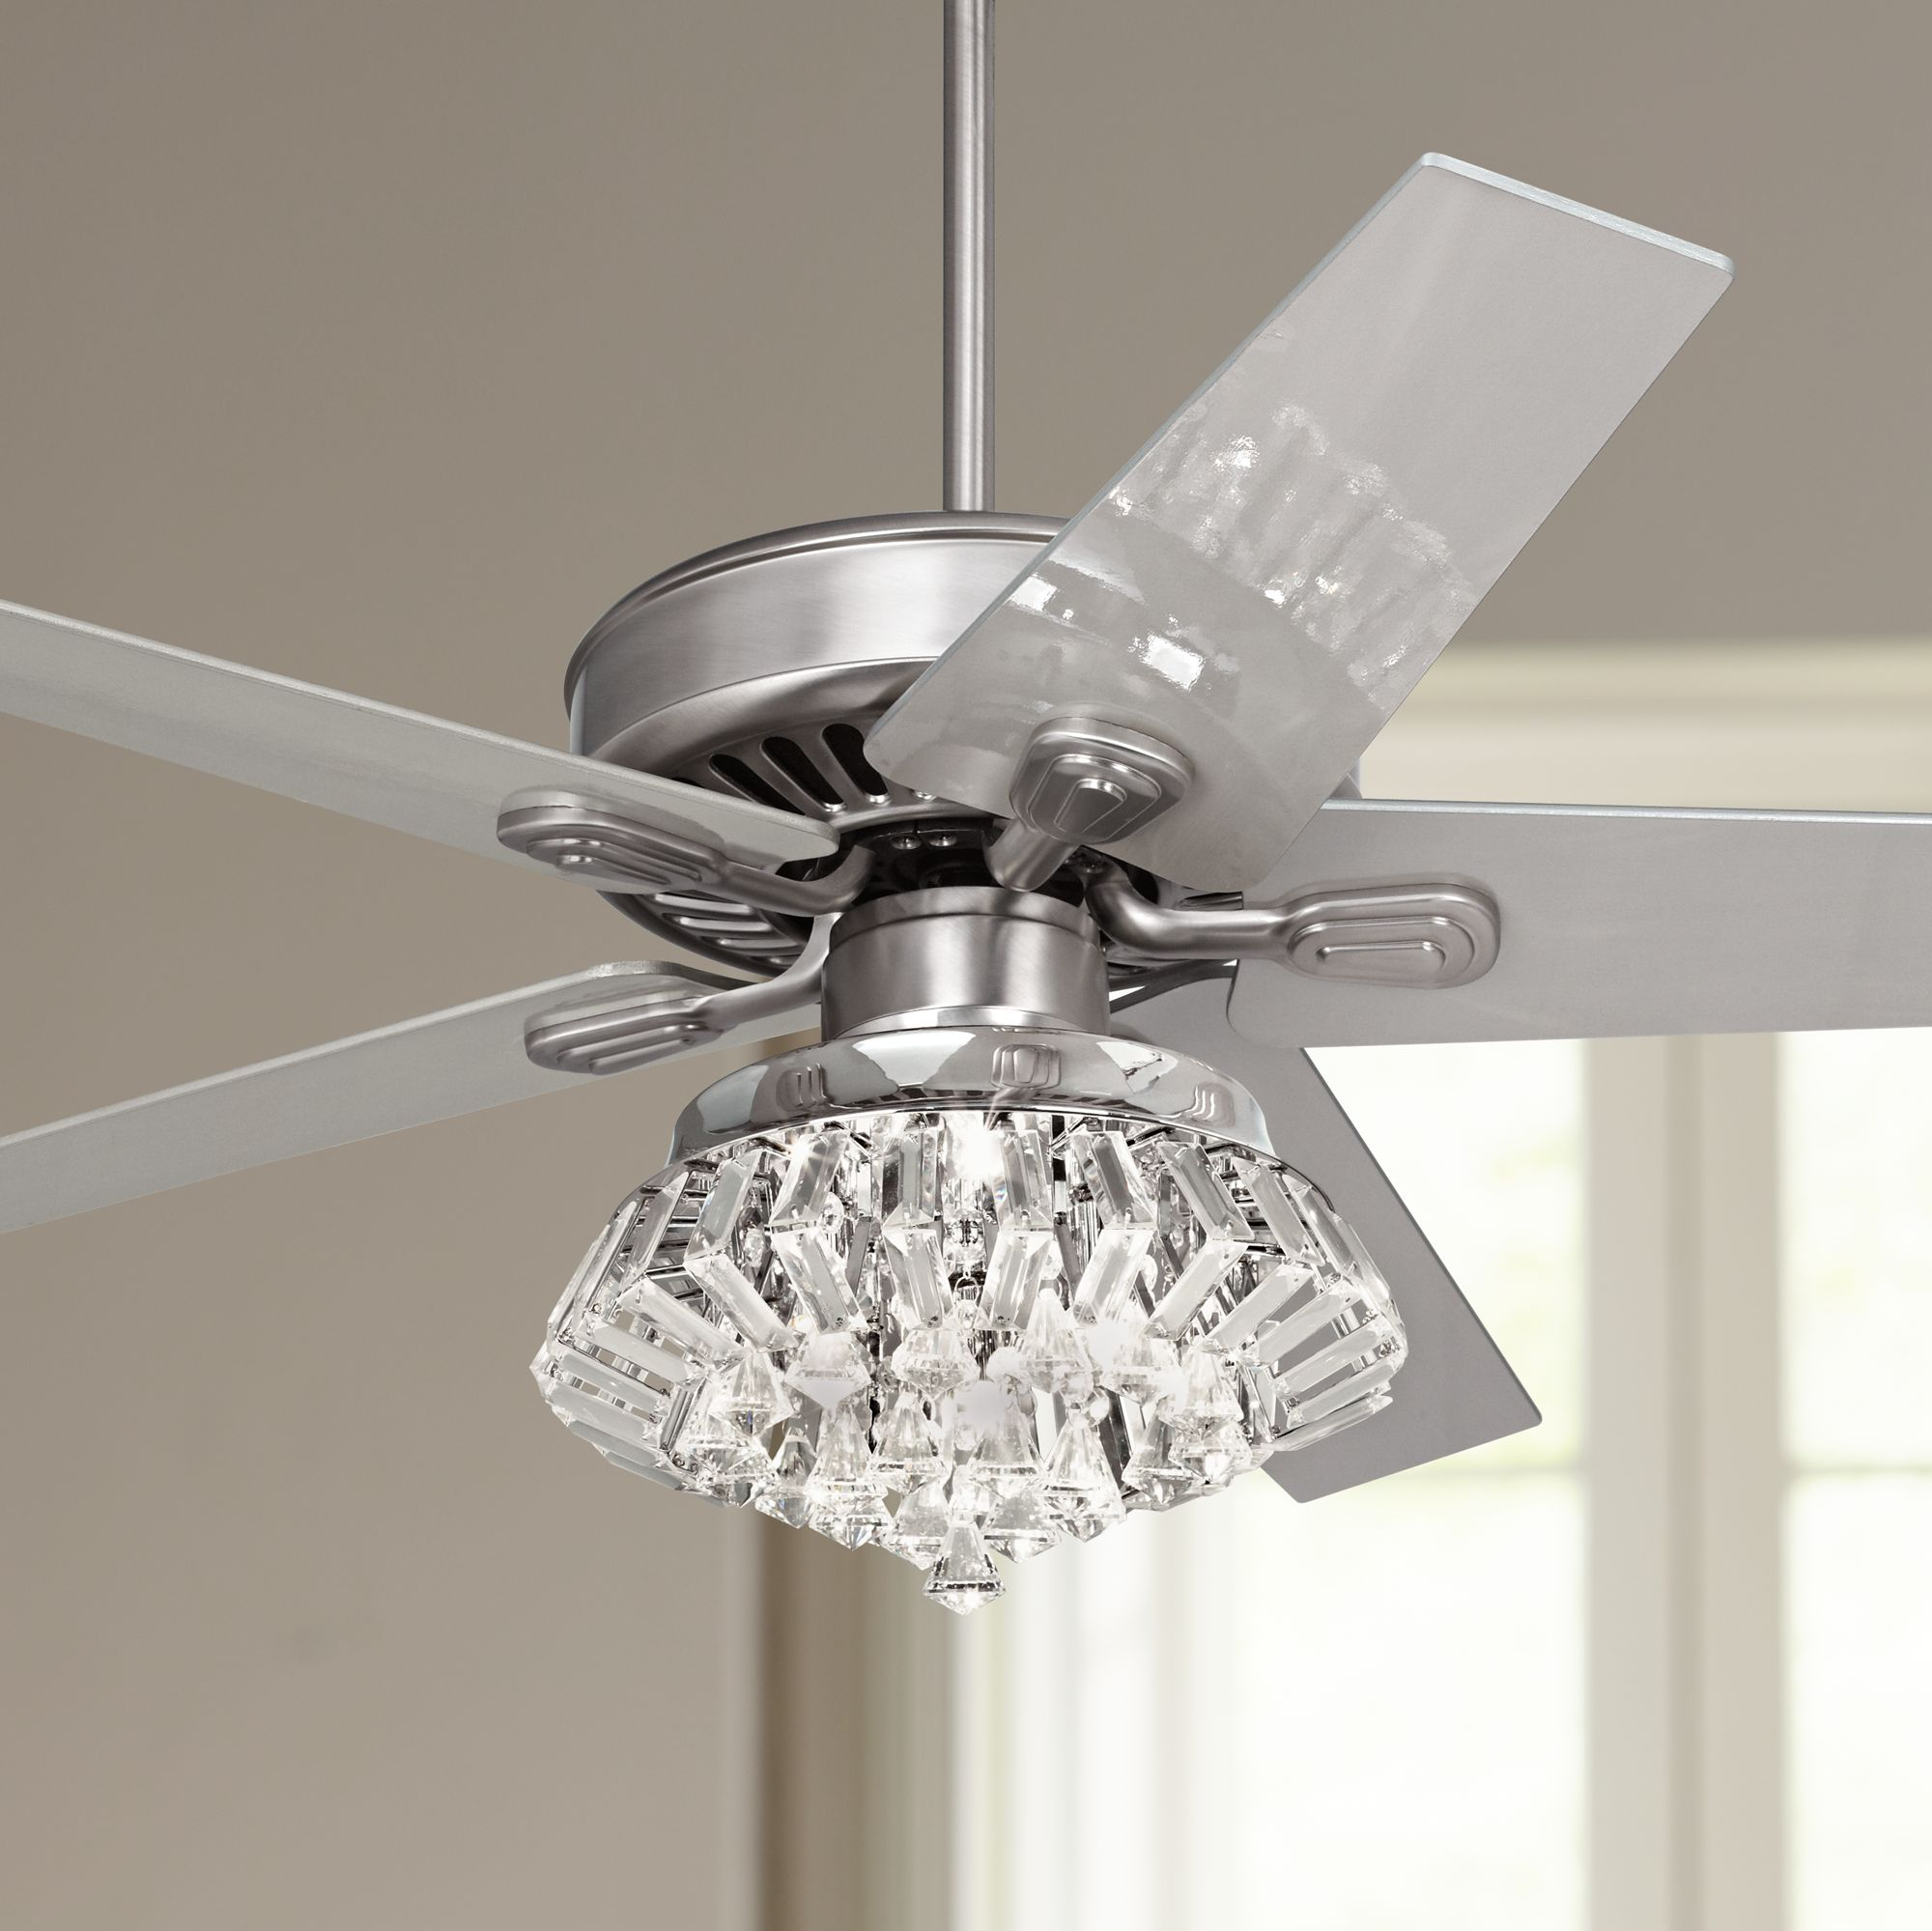 ceiling fans with lights 52 FQPQJAA